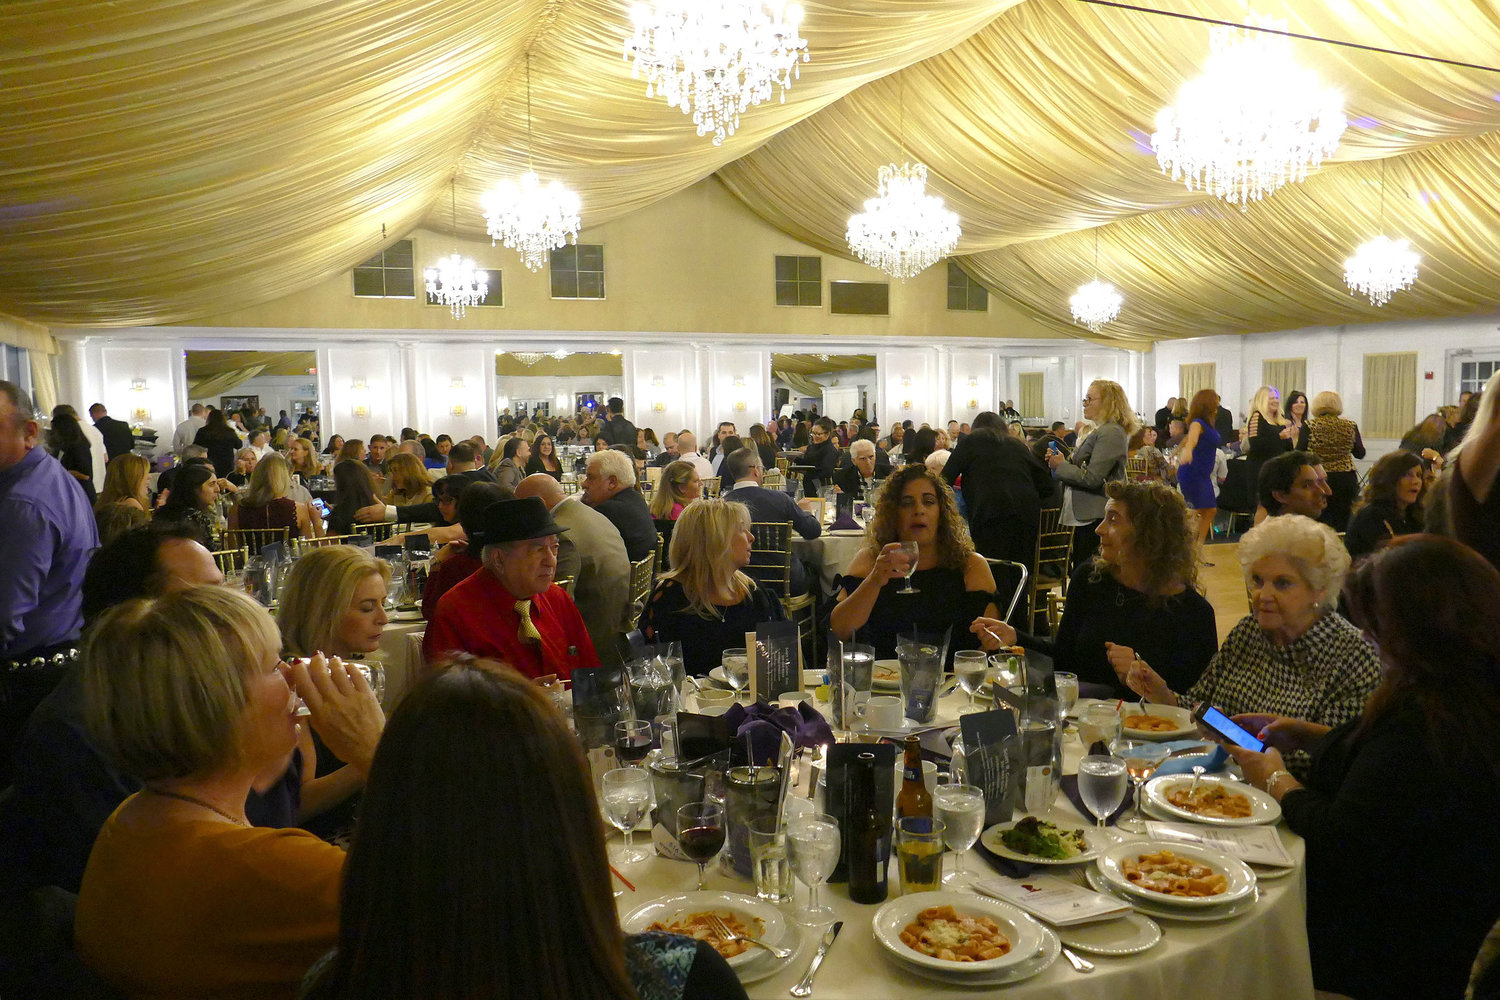 Hundreds of people attended the ninth annual fundraiser benefitting St. Jude Children's Hospital at the Bridgeview Yacht Club on Oct. 20.